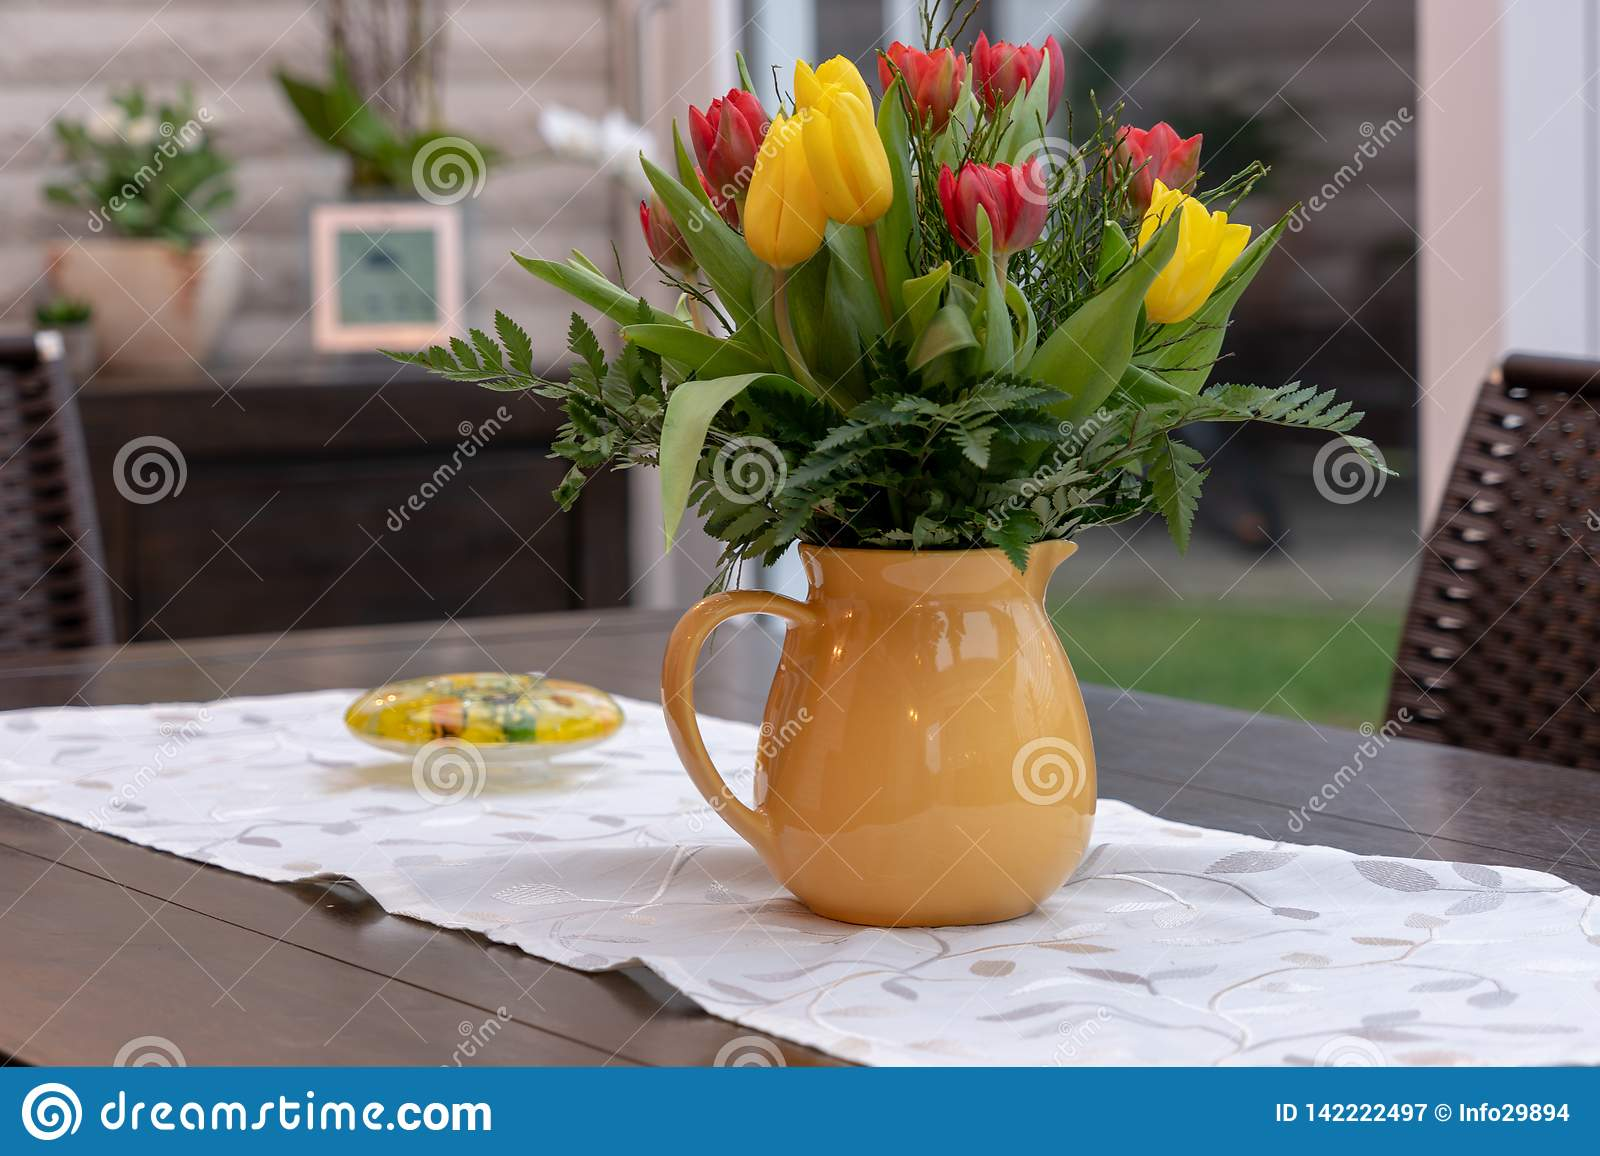 bouquet of colourful tulips stands in a yellow vase